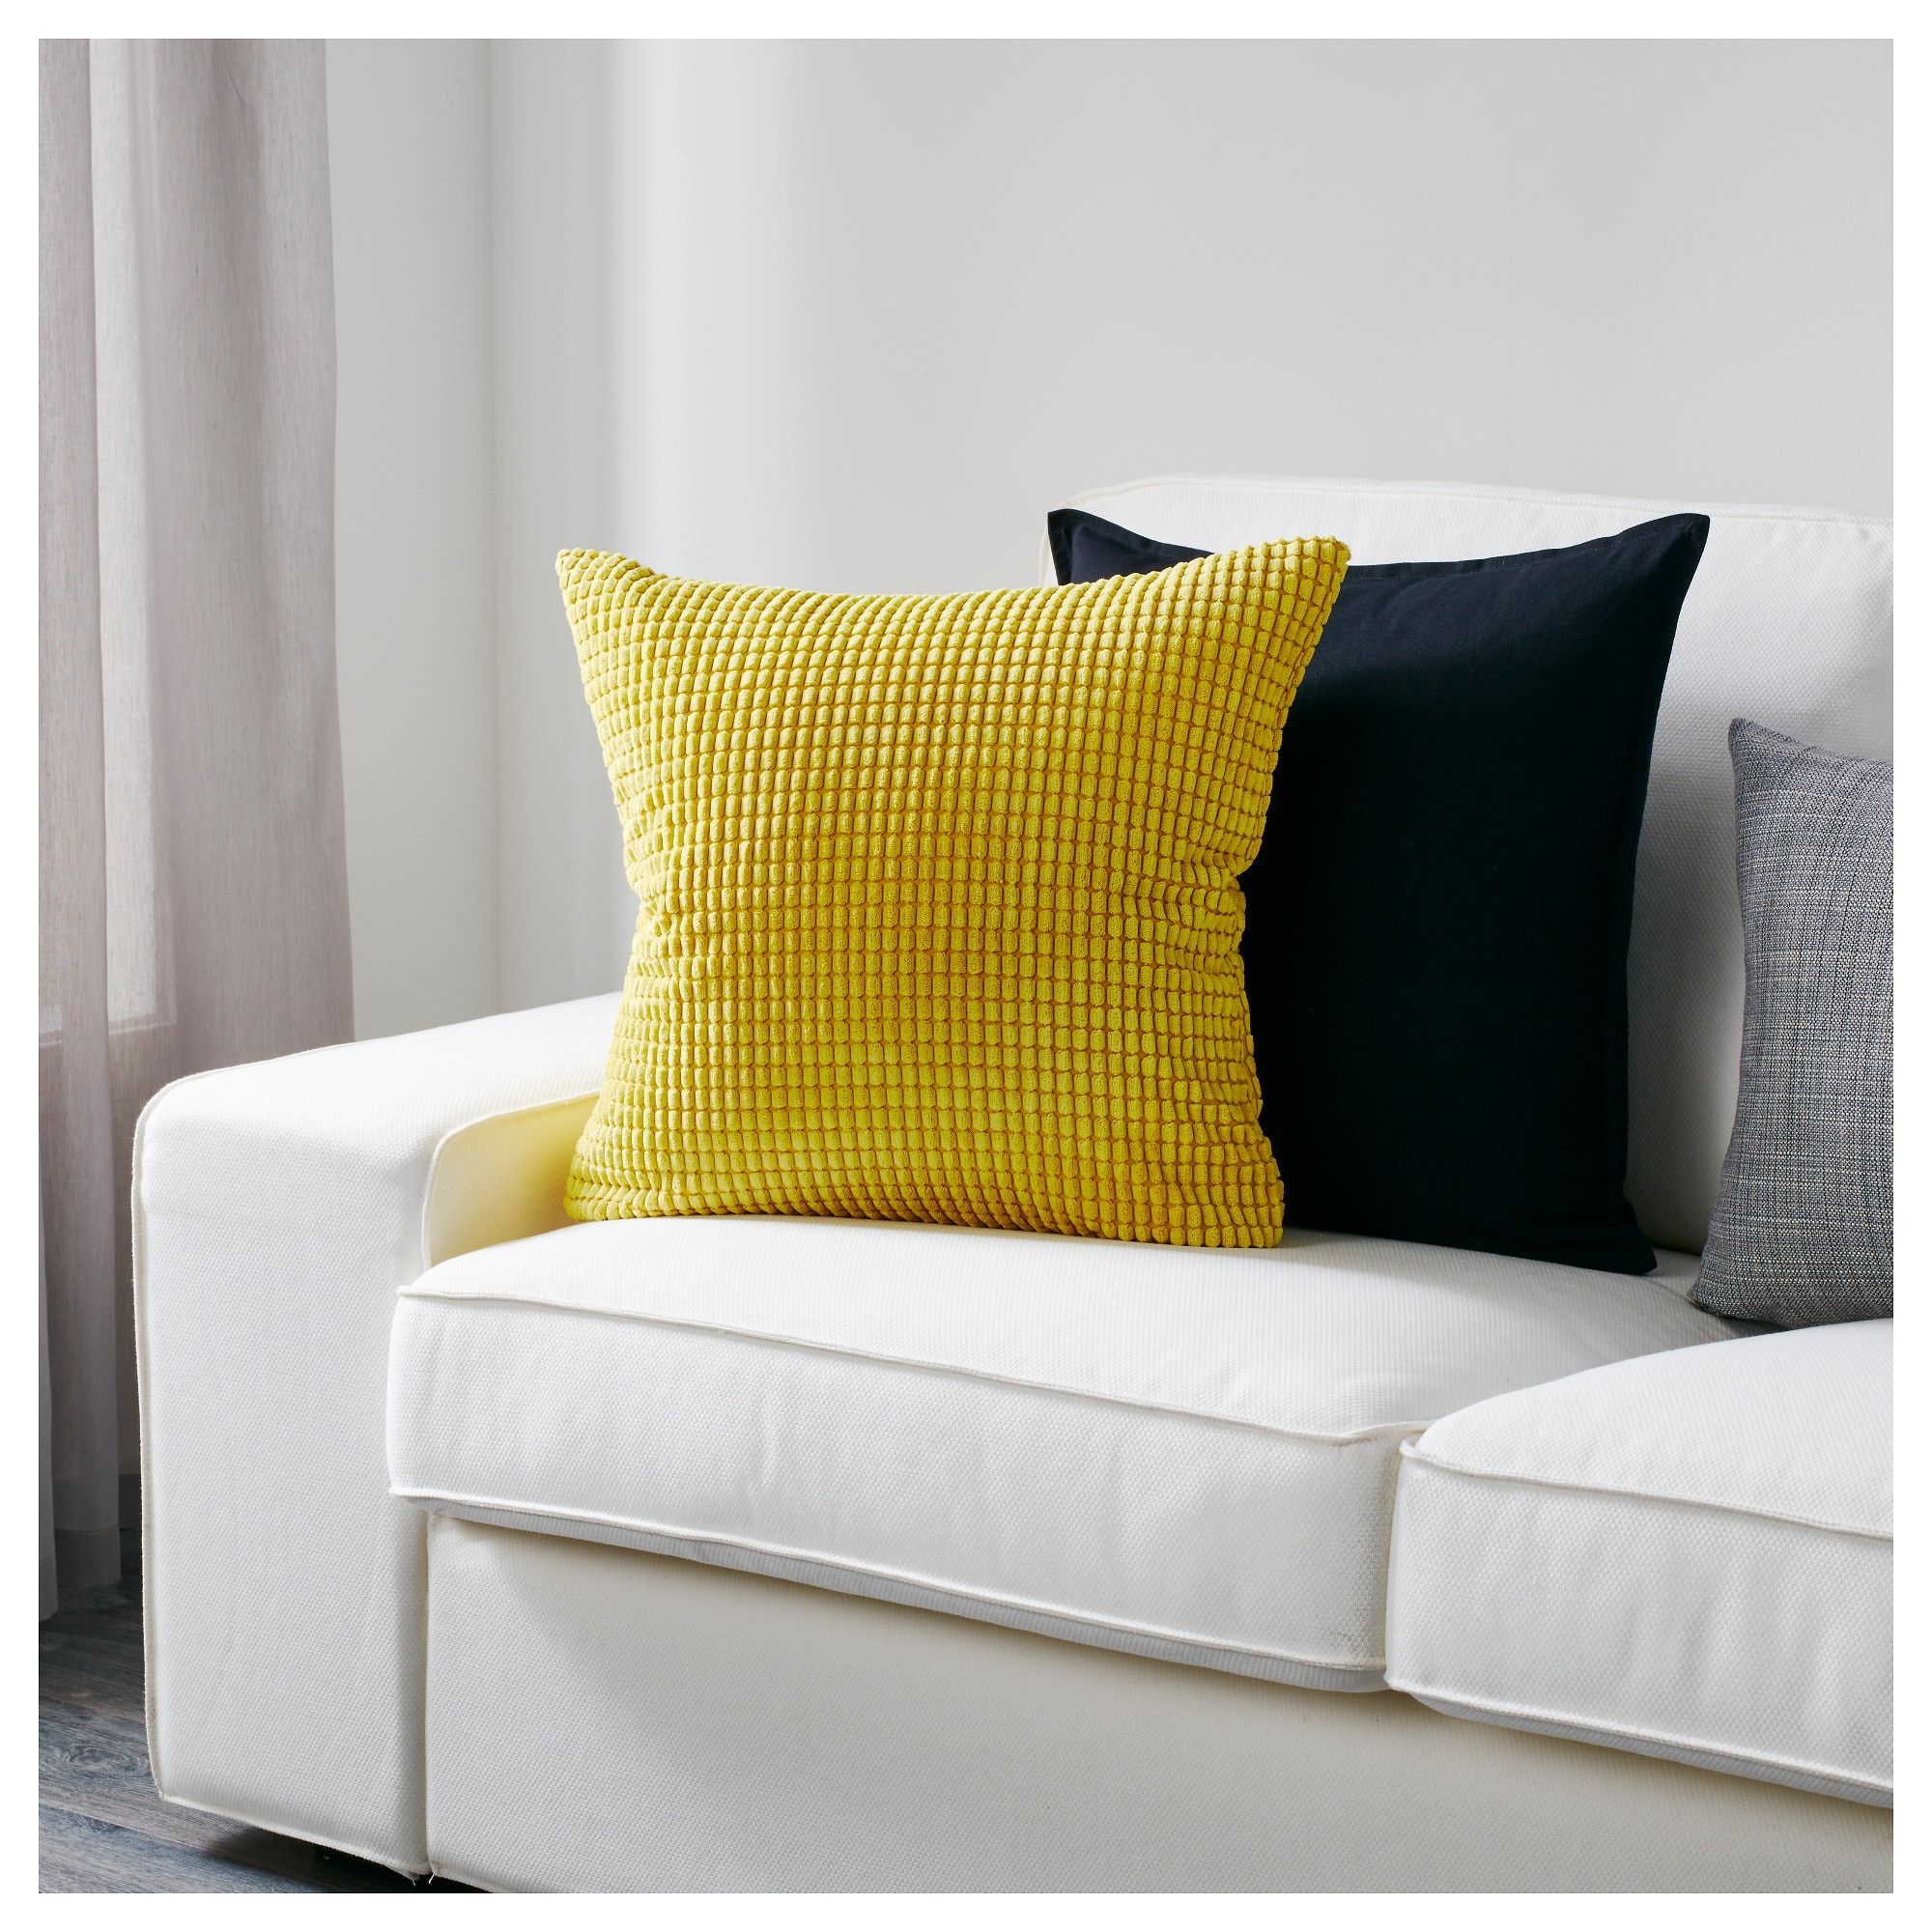 GULLKLOCKA Cushion cover, yellow IKEA Ireland Cushions